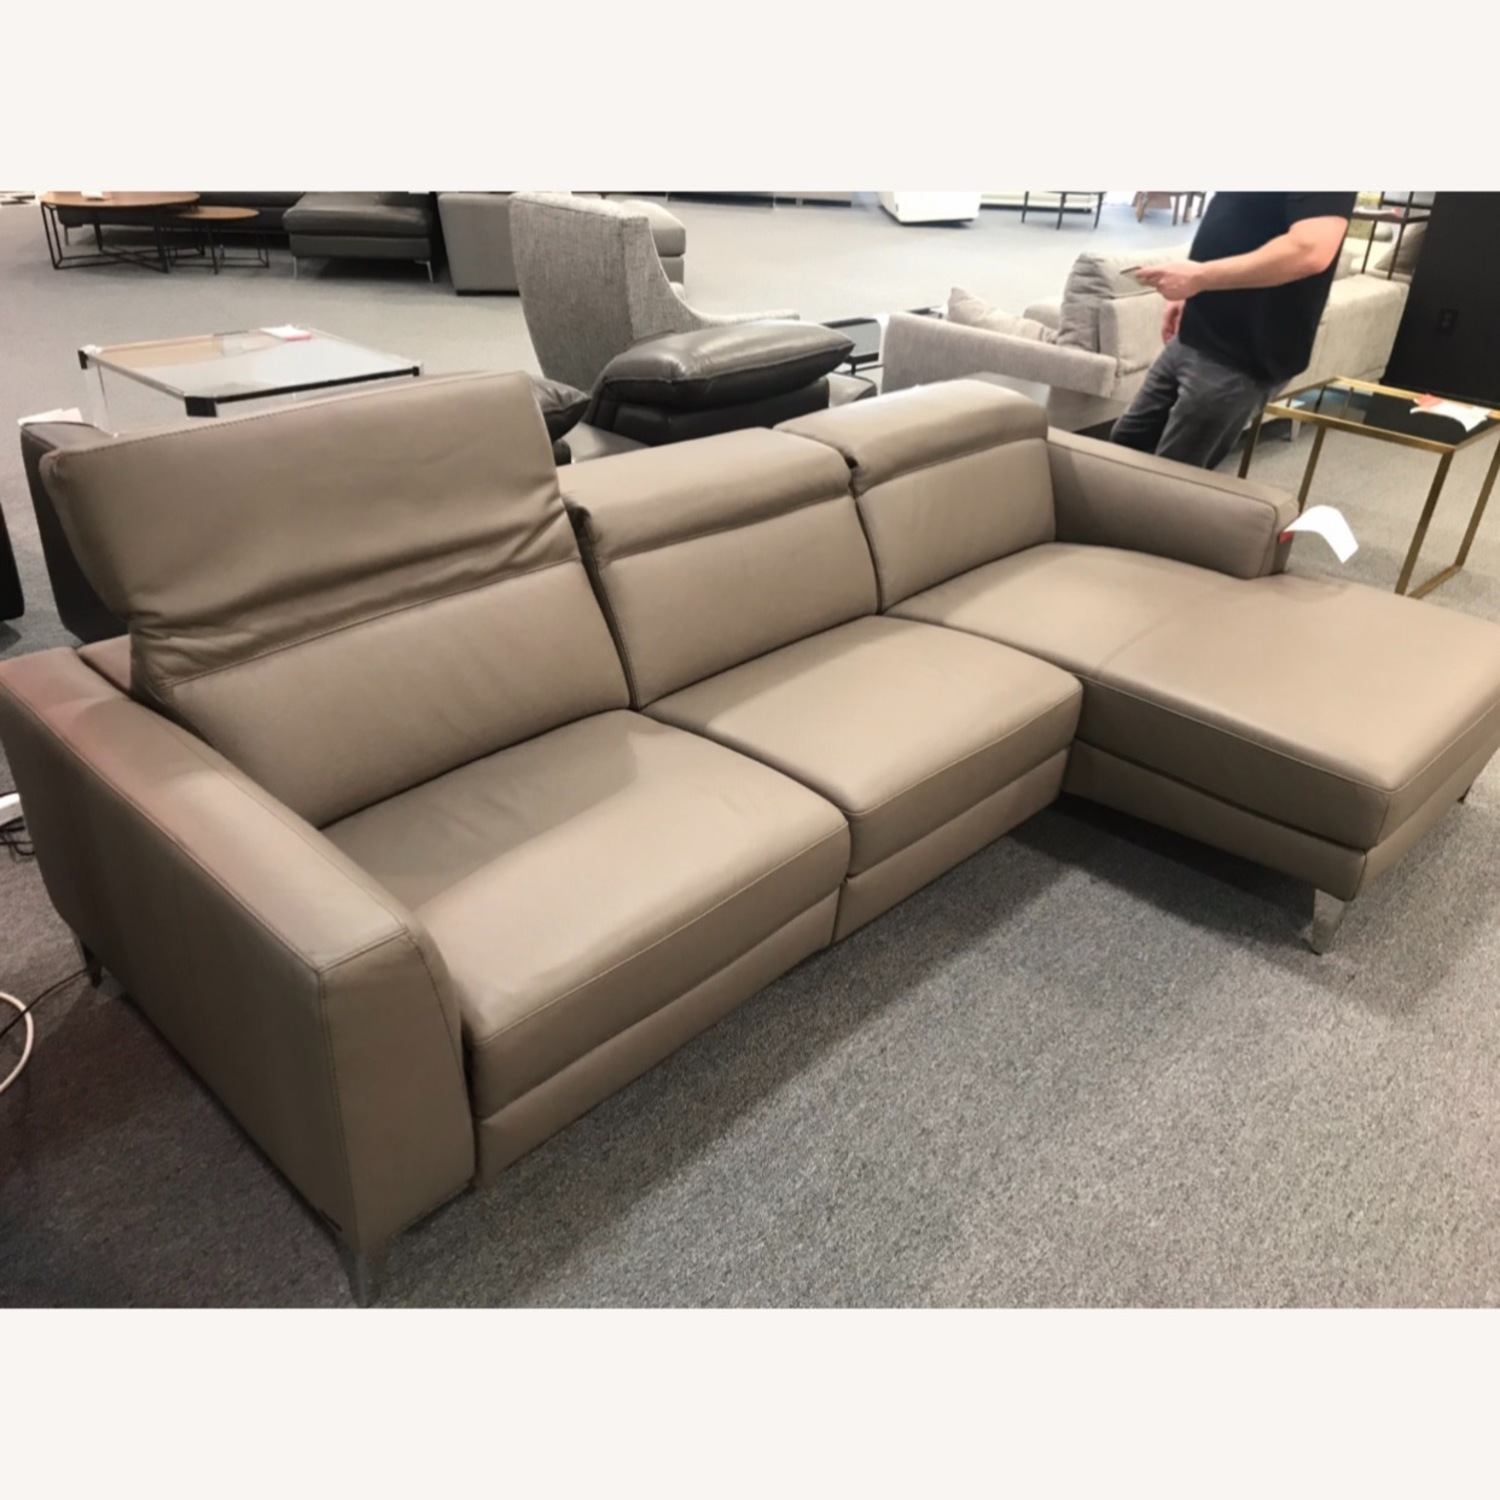 Nicoletti Vincent Leather Sectional Sofa - image-2